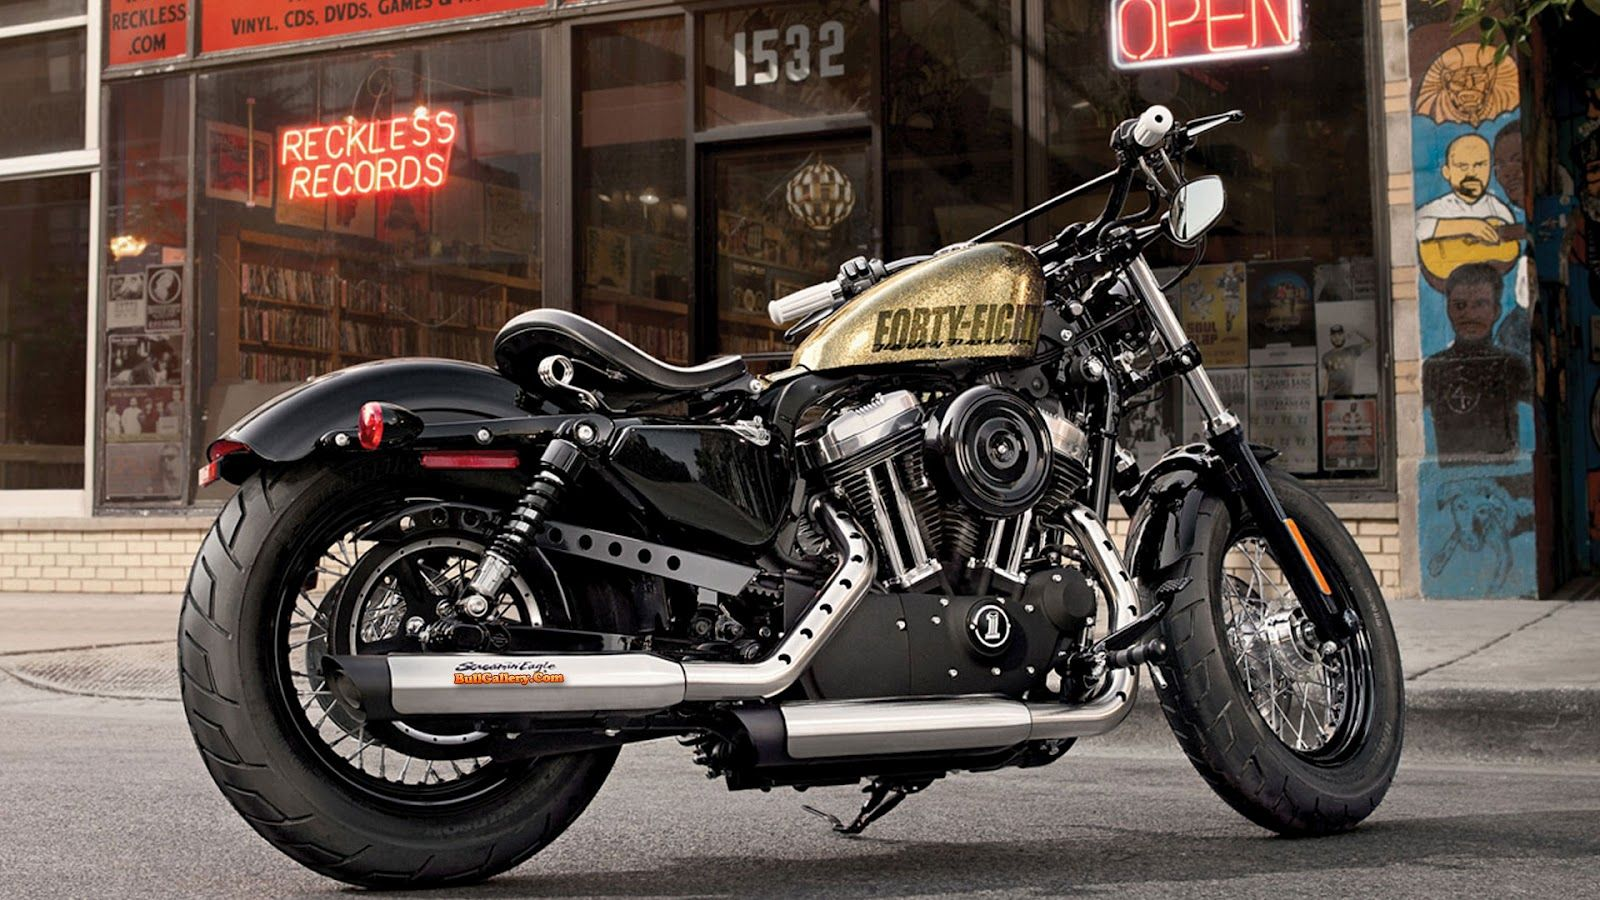 Harley Davidson Xl1200x Forty Eight 48 Hd Wallpapers Jpg 1600 900 Harley Davidson Sportster Harley Davidson Wallpaper Harley Davidson